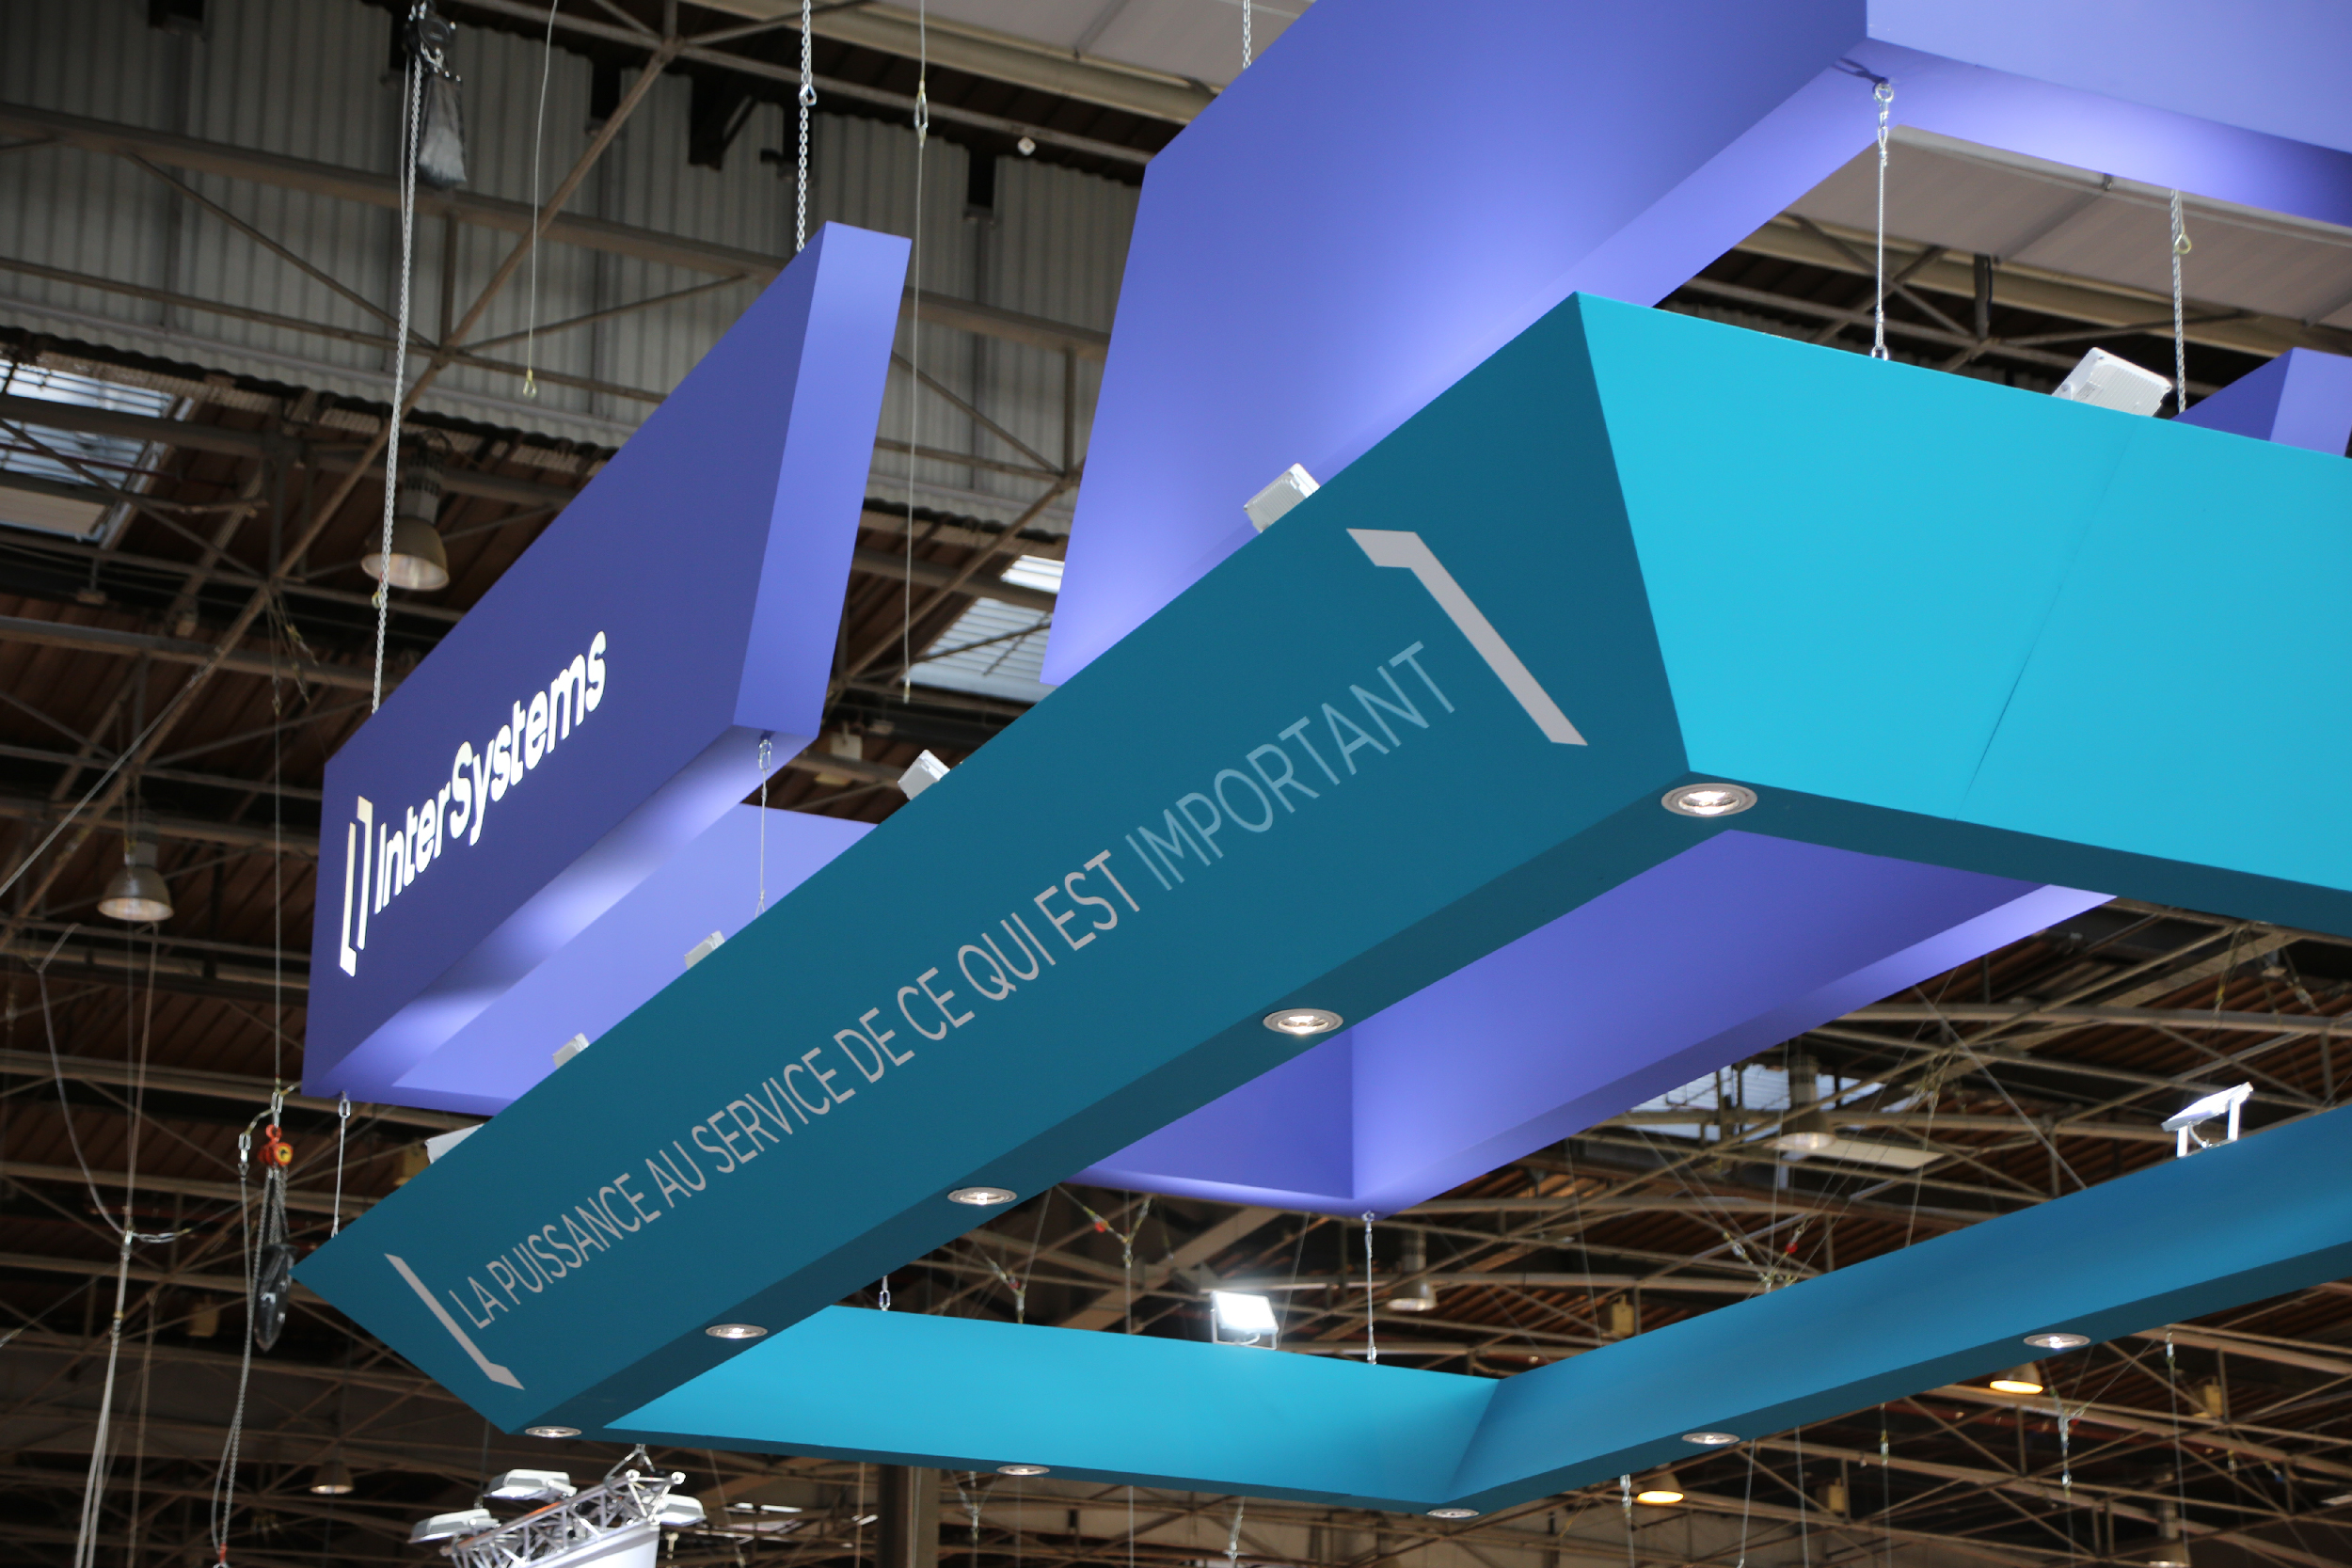 stand d'exposition Intersystems au salon HIT2017 | détail du plafond